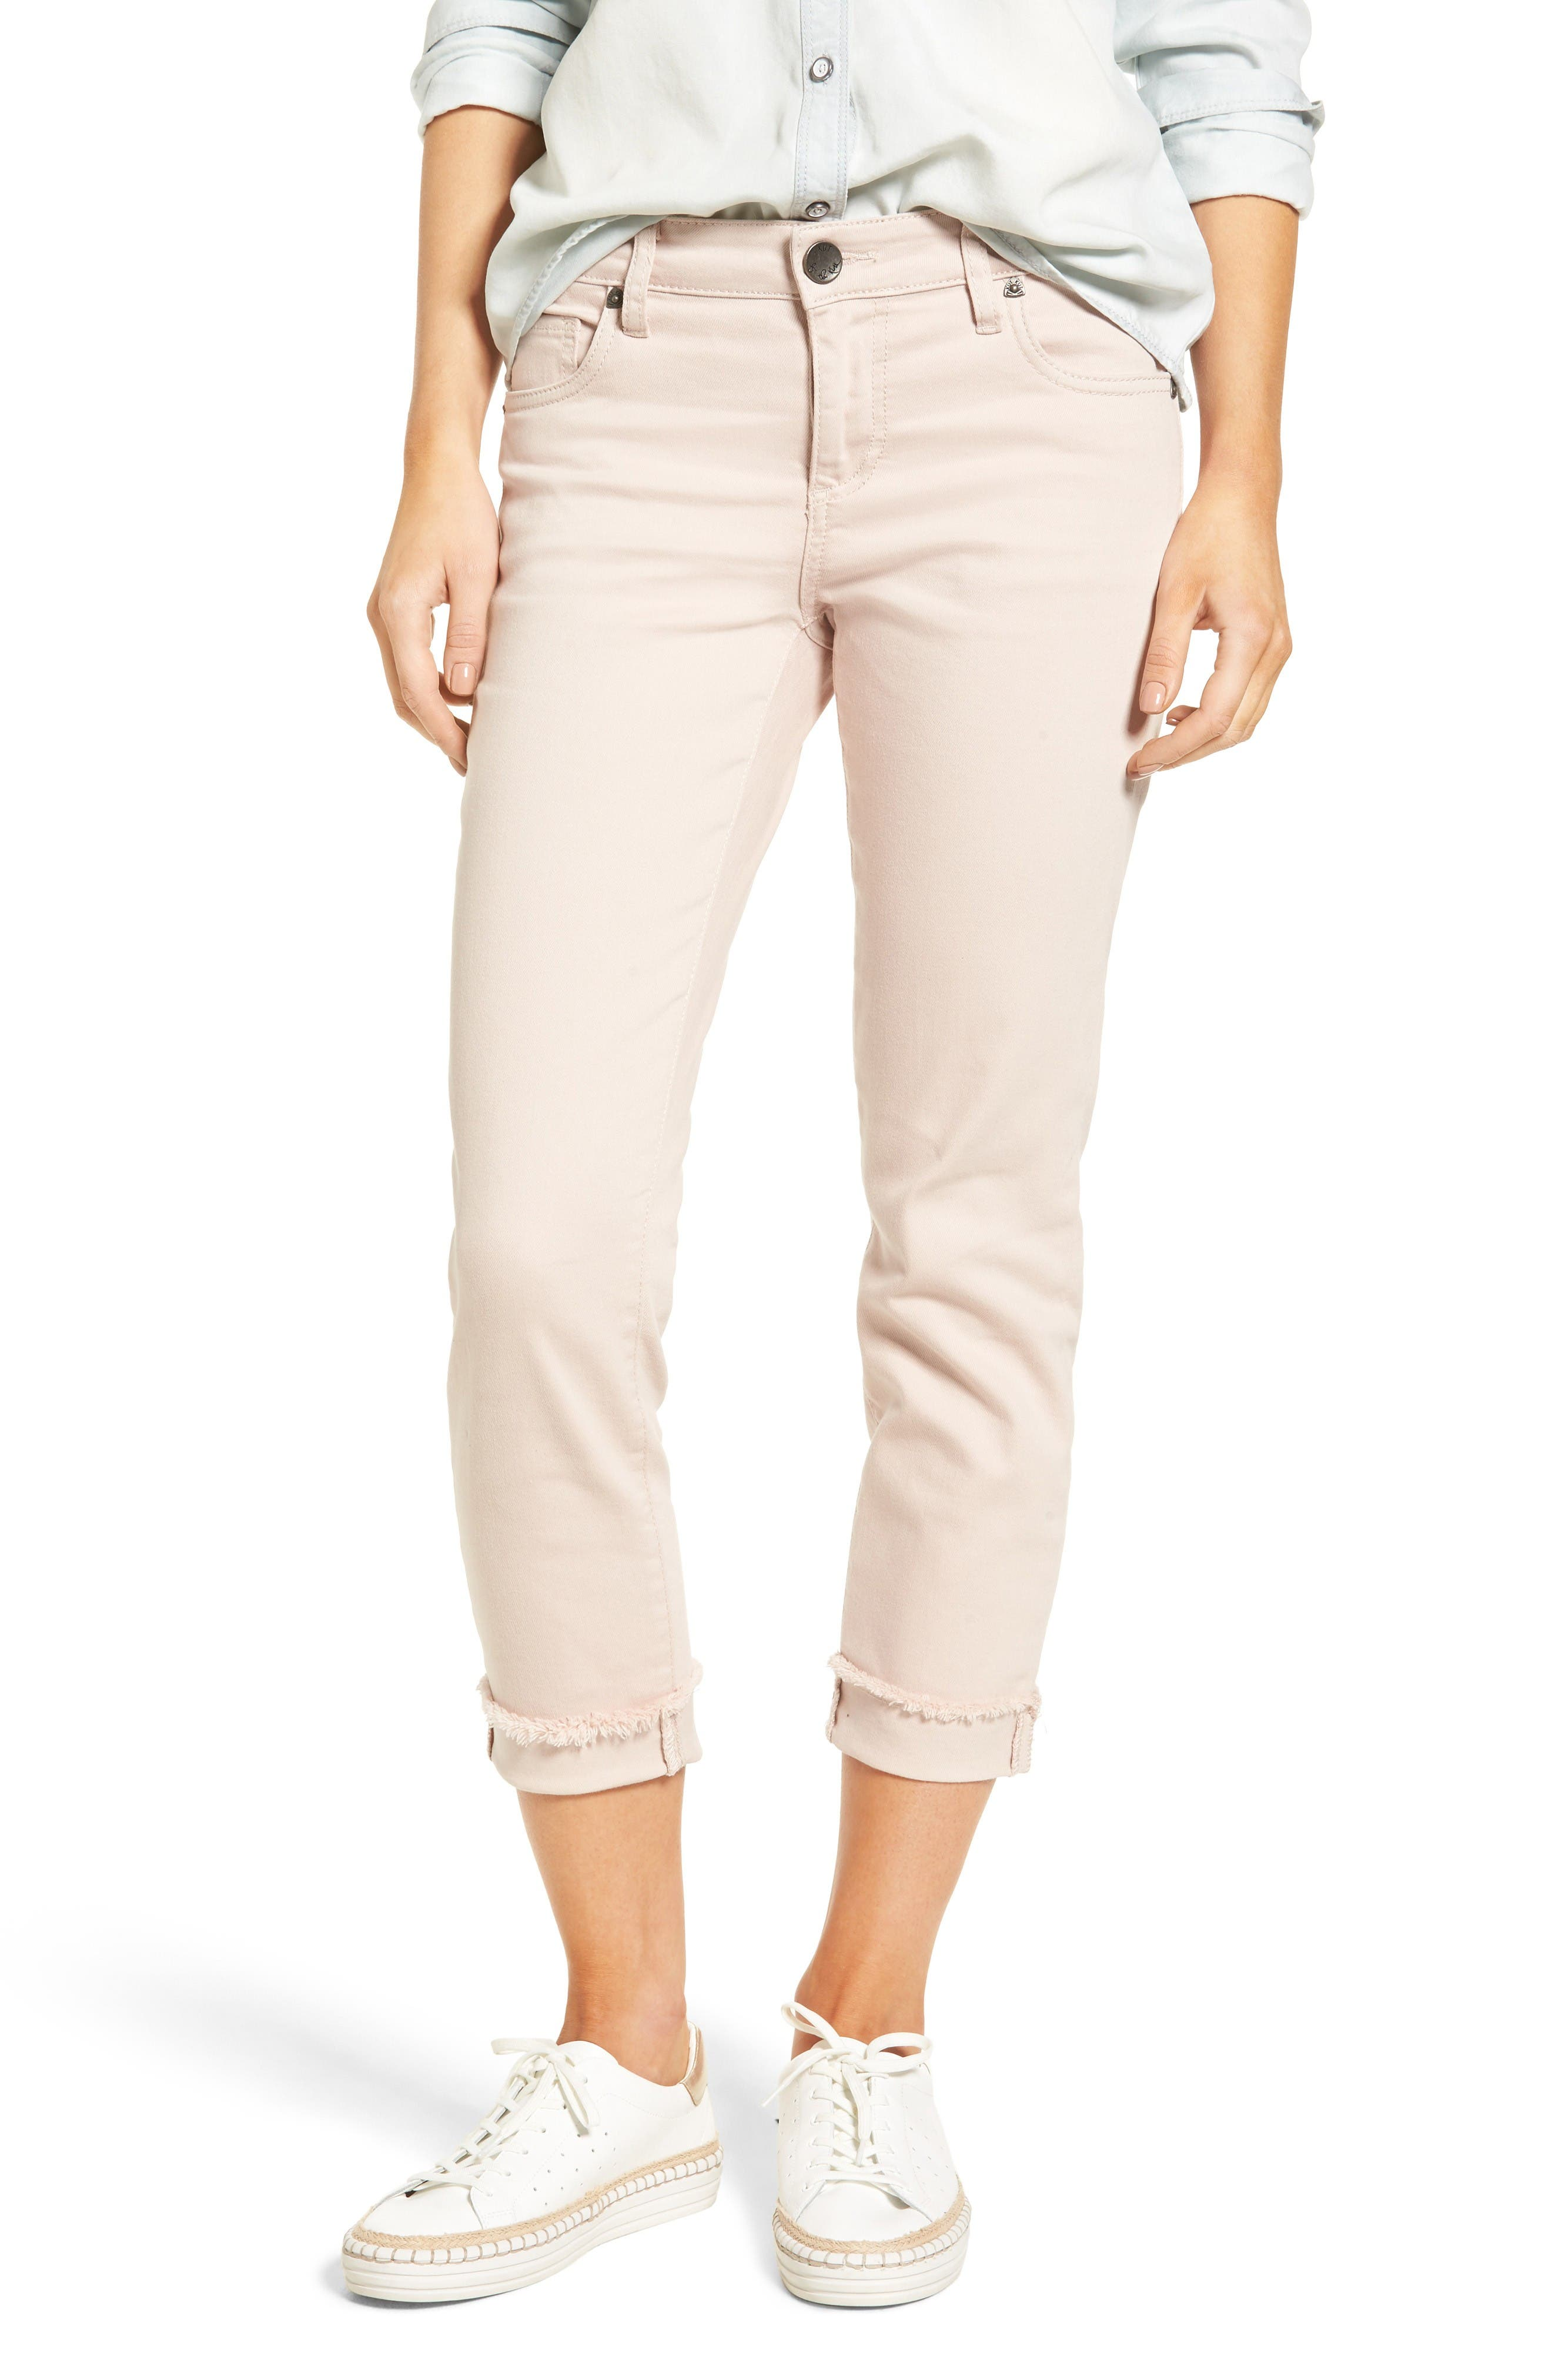 Alternate Image 1 Selected - KUT from the Kloth Amy Stretch Slim Crop Jeans (Blush Rose)